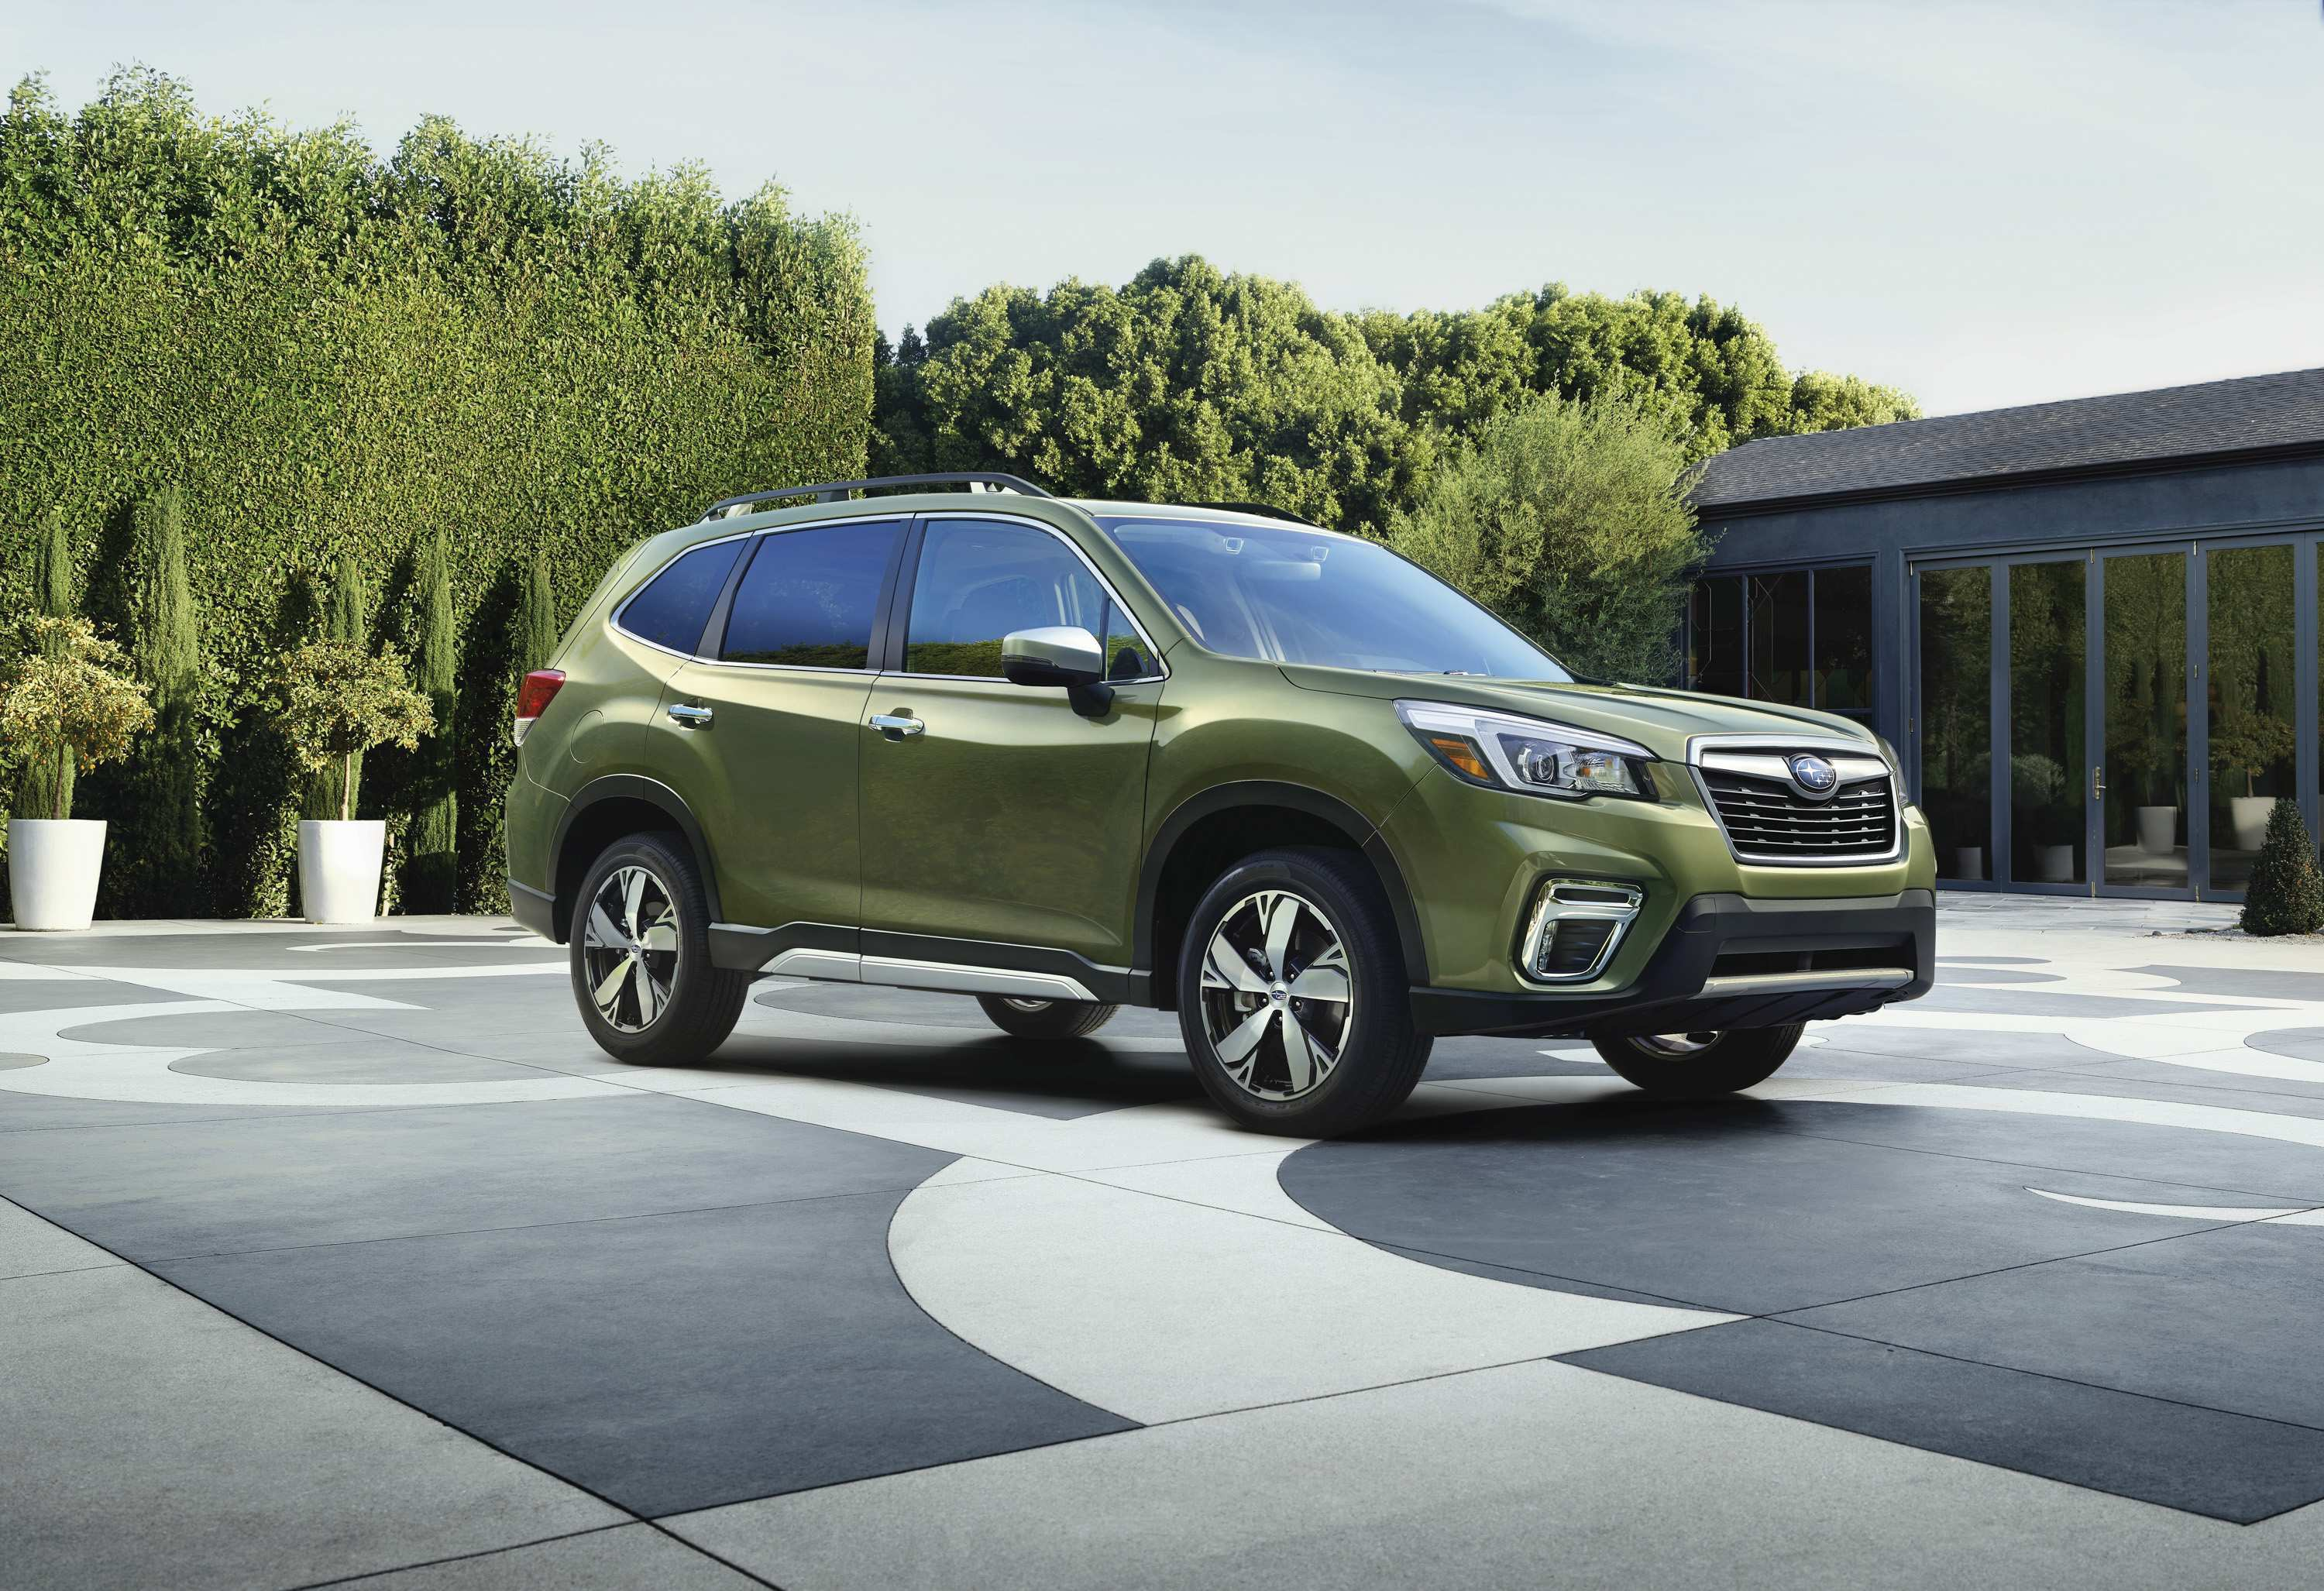 71 New 2019 Subaru Forester Manual Exterior And Interior